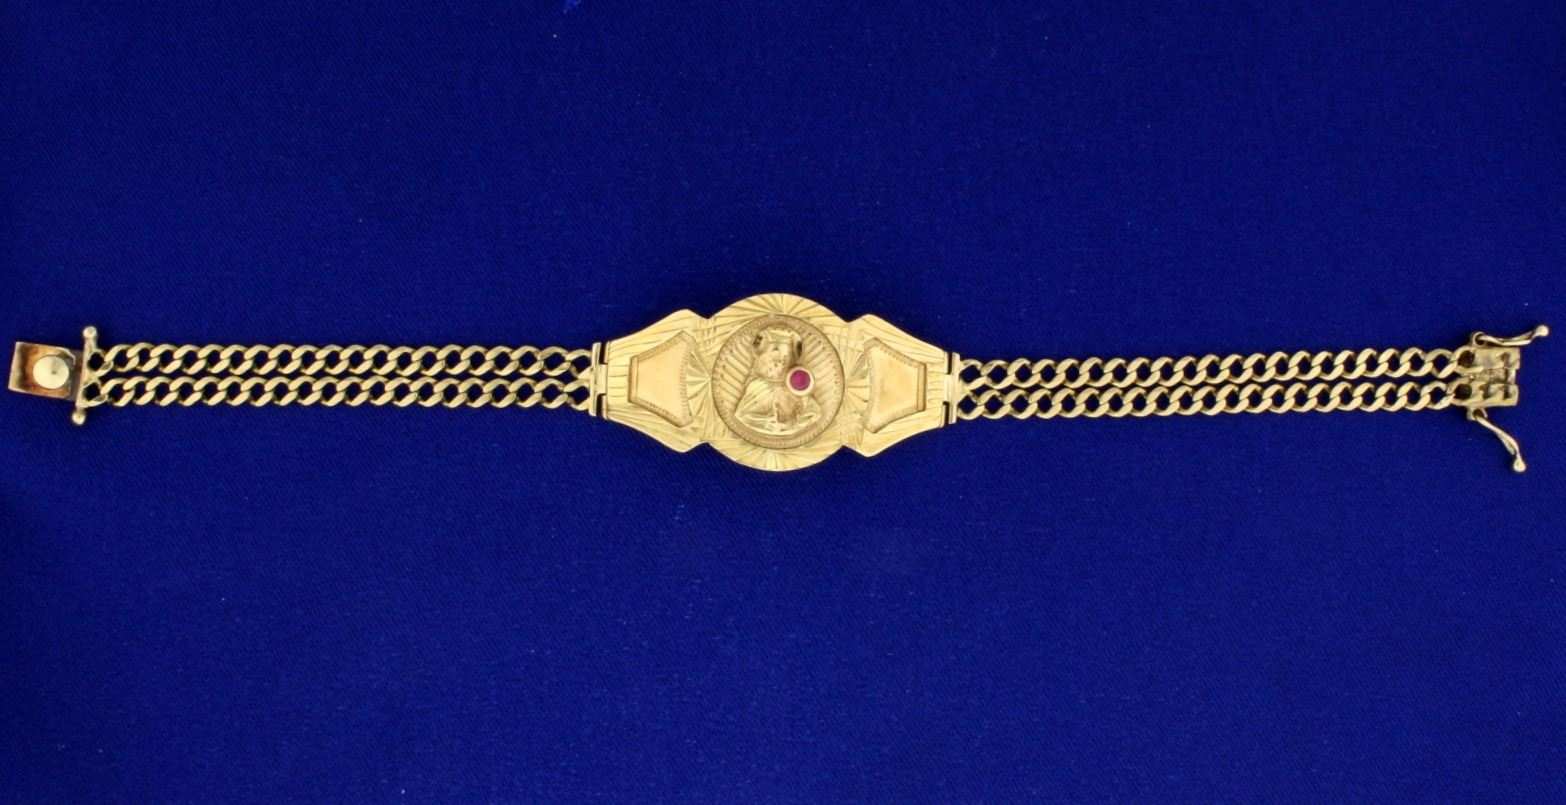 Image 1 8 Inch Gold Virgin Mary Bracelet With Ruby